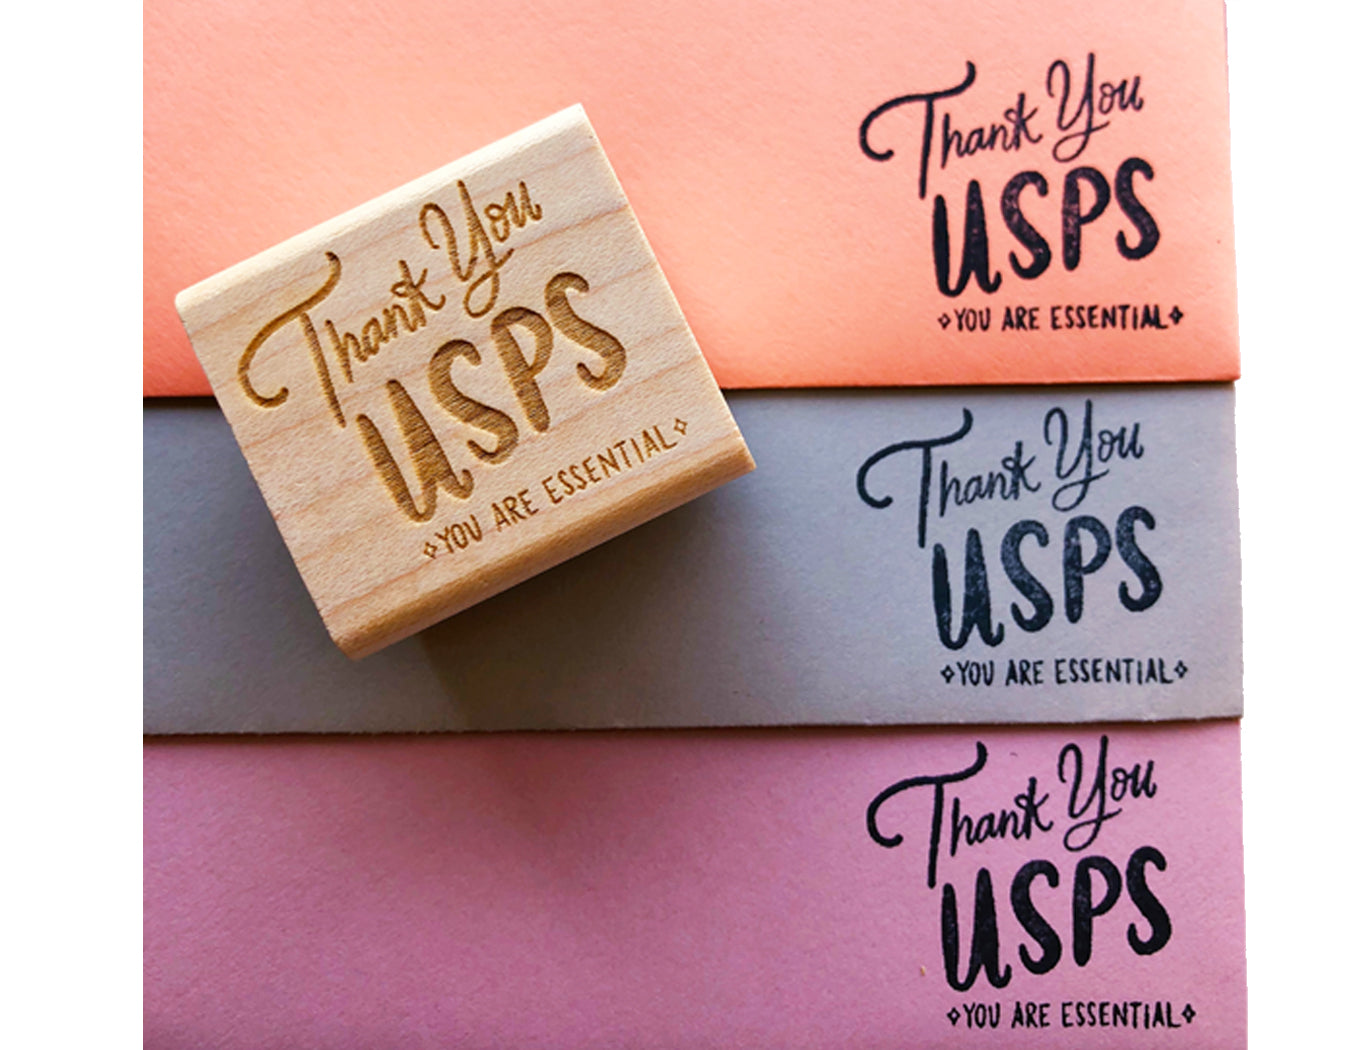 rubber stamped envelopes that read Thank You USPS